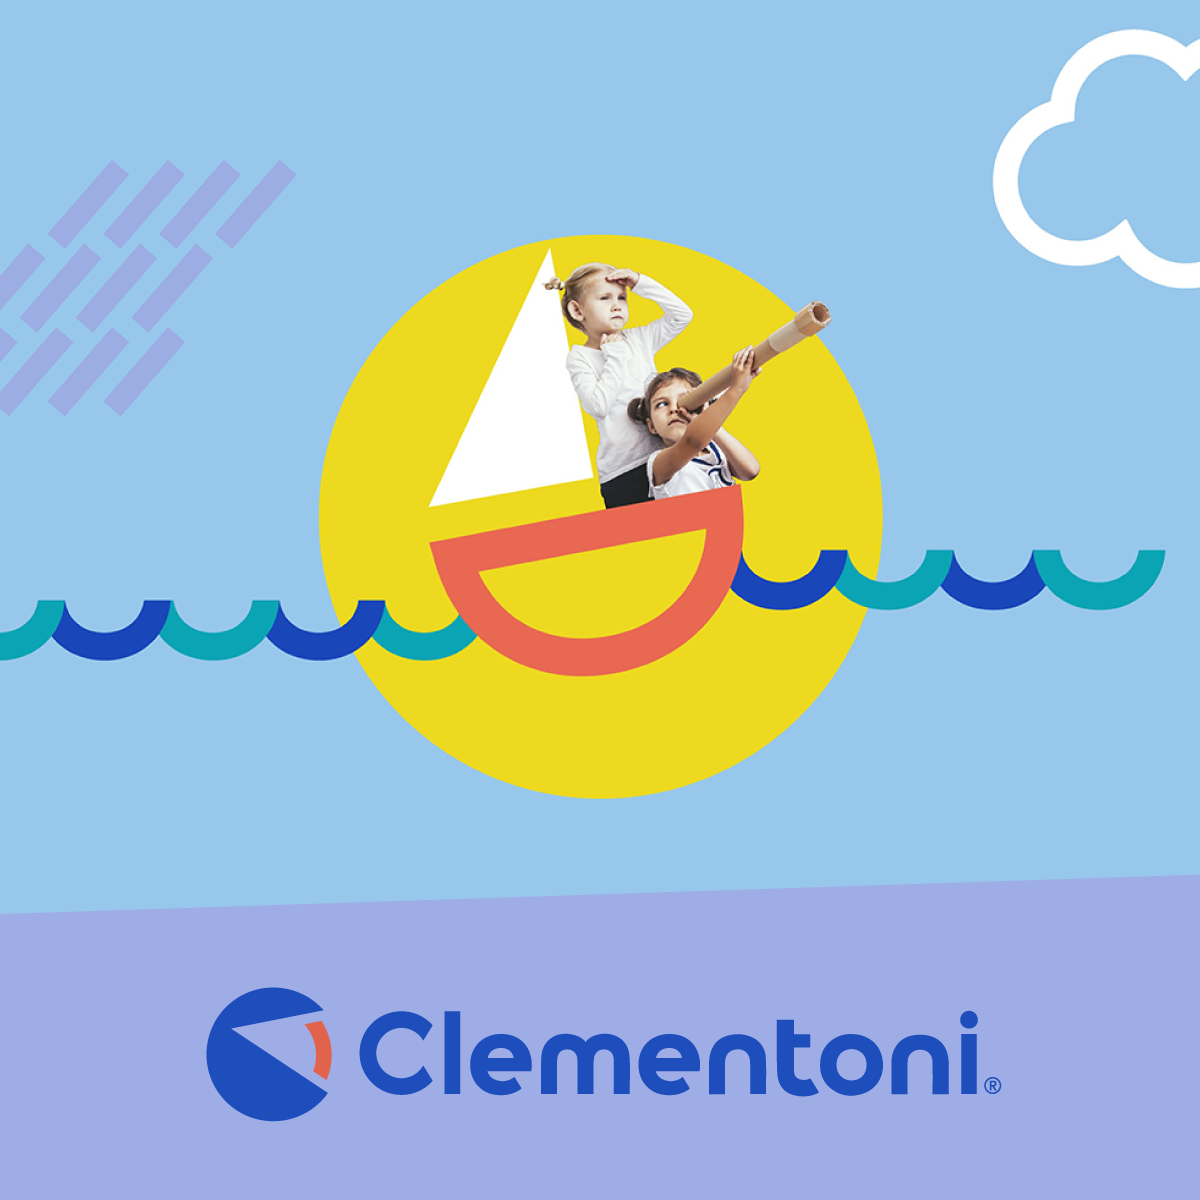 Clementoni Innovation Project